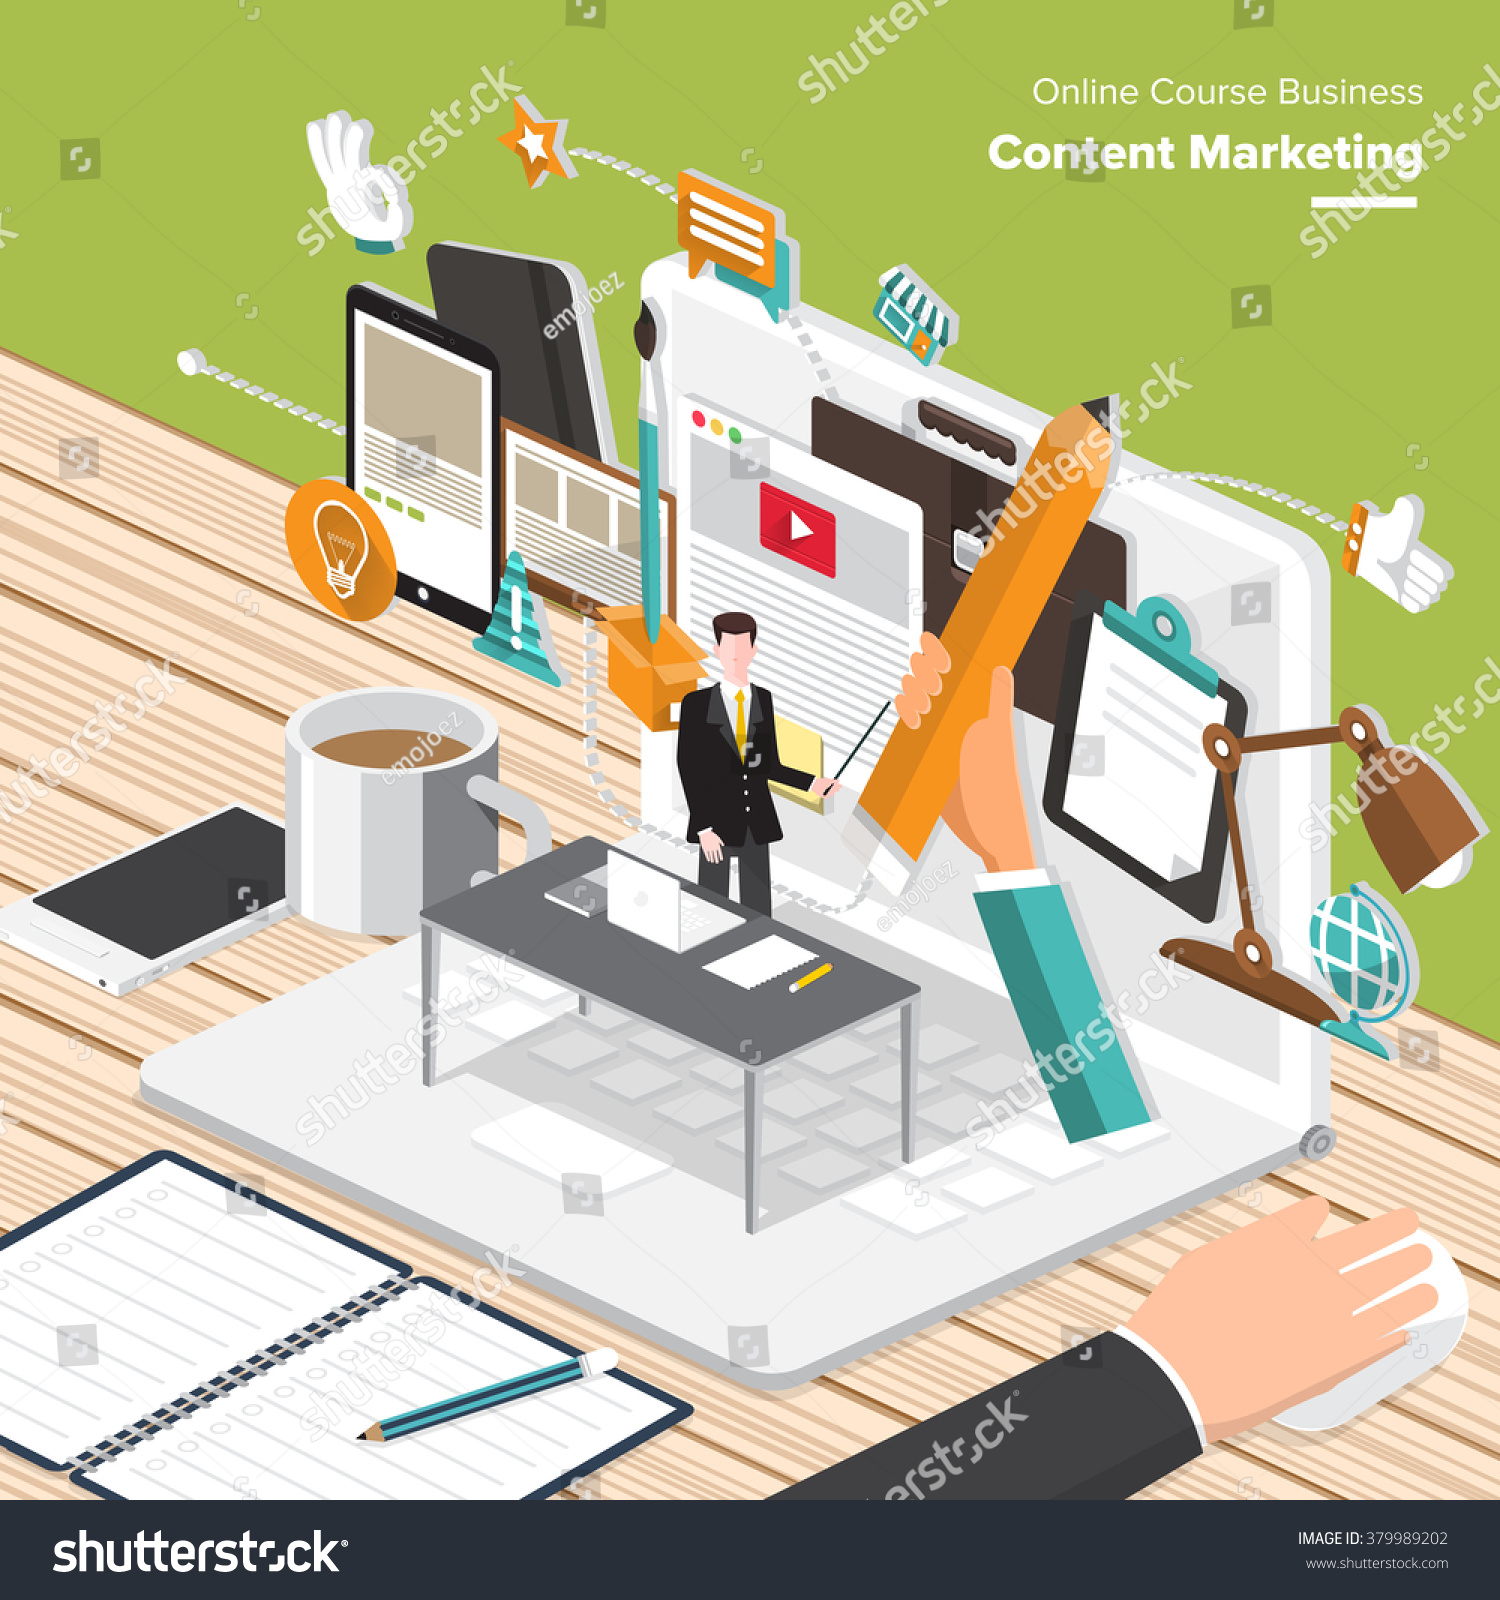 Isometric Flat Design Concepts For Content Marketing Finding Target Of Market Mobile Banking